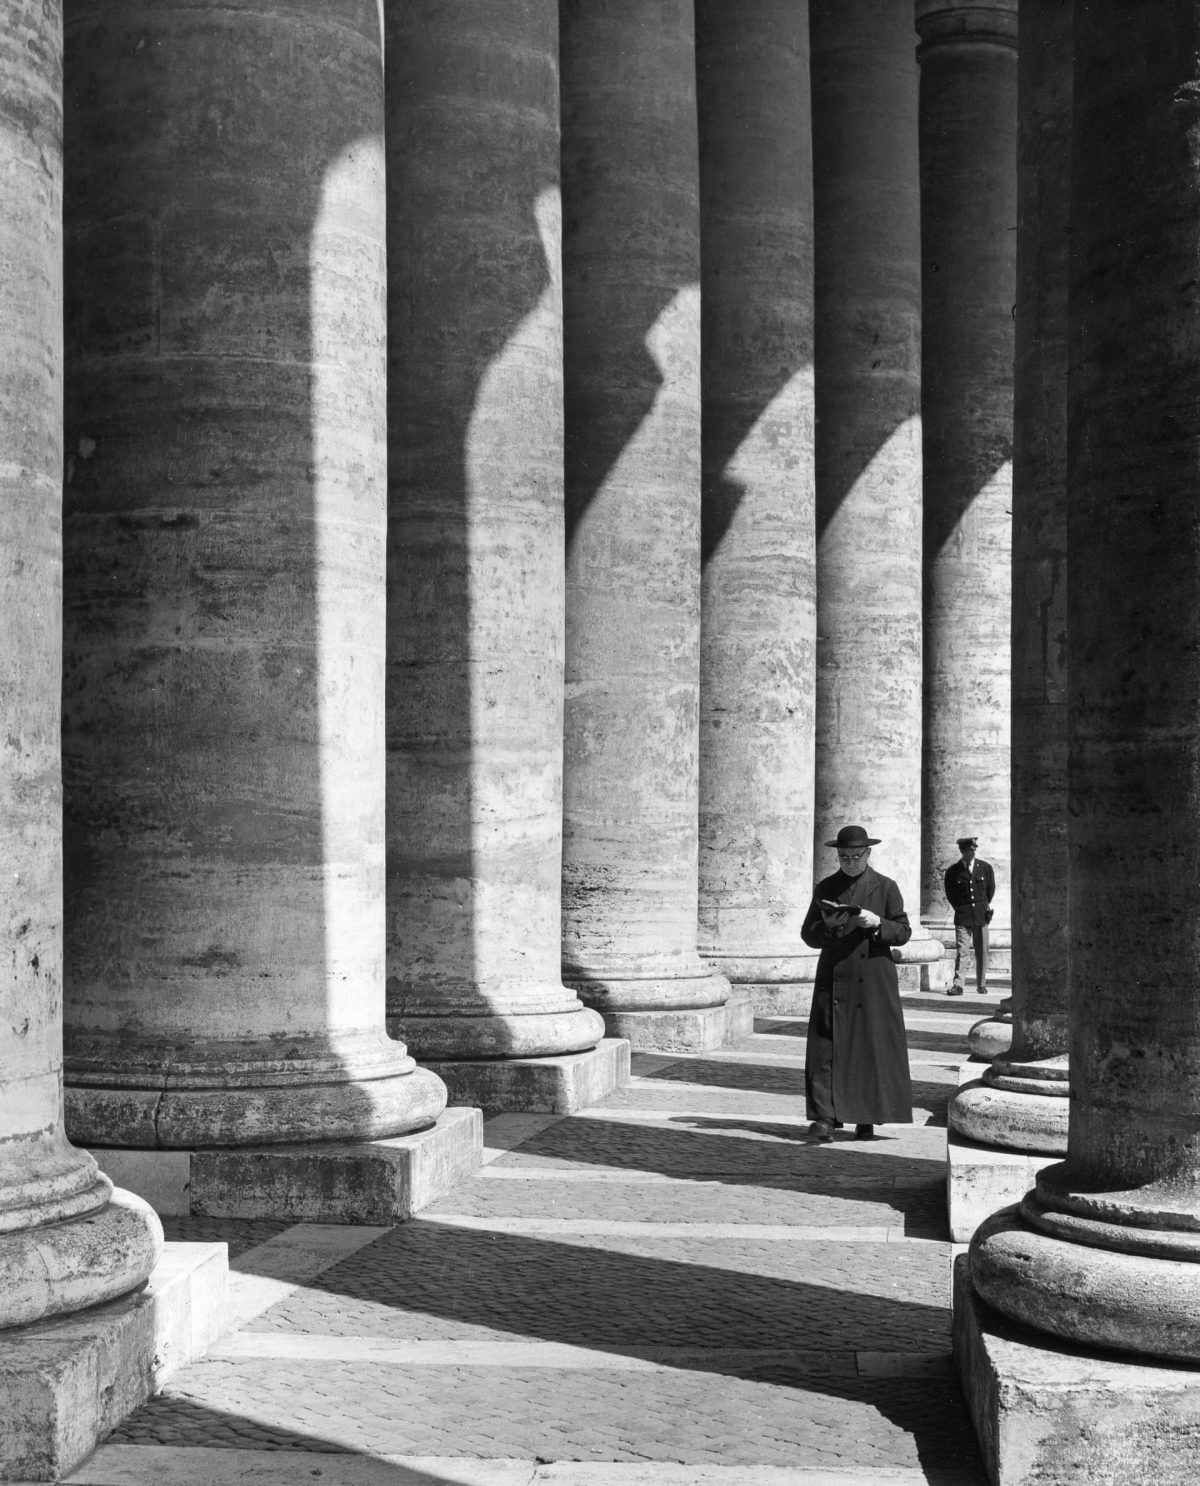 The colonnade, St Peter's Square, 1960 rome